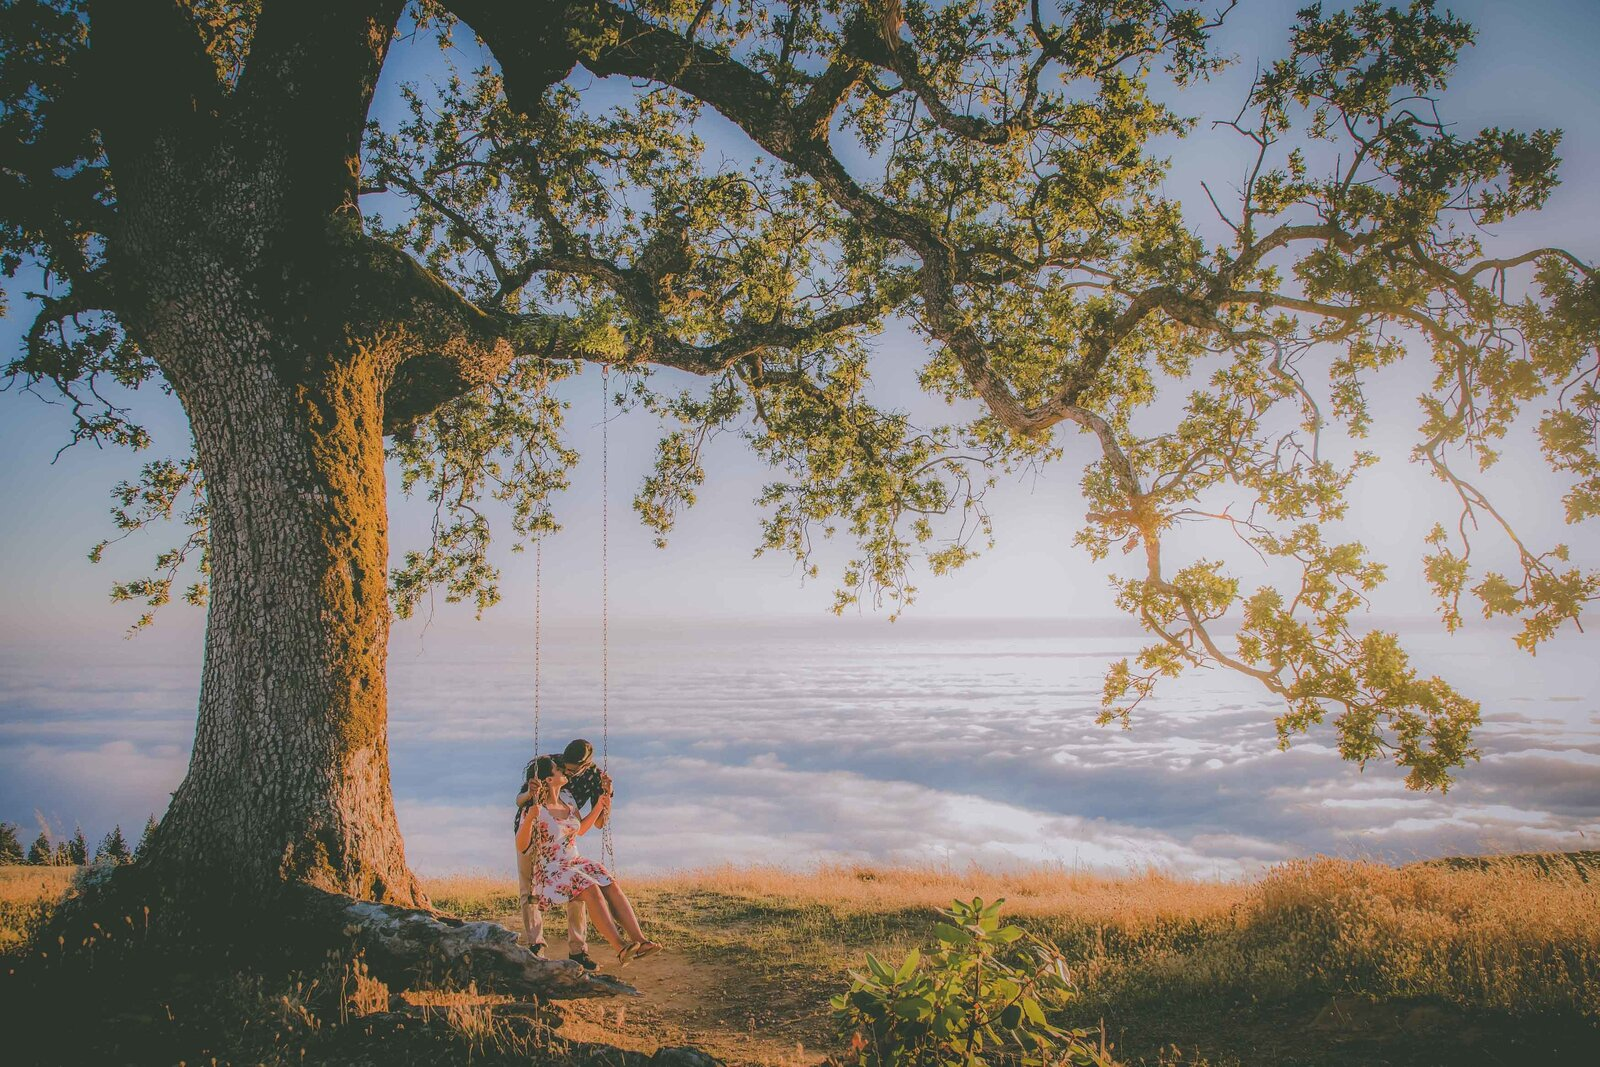 Couple kisses on swing set under a tree during sunset.